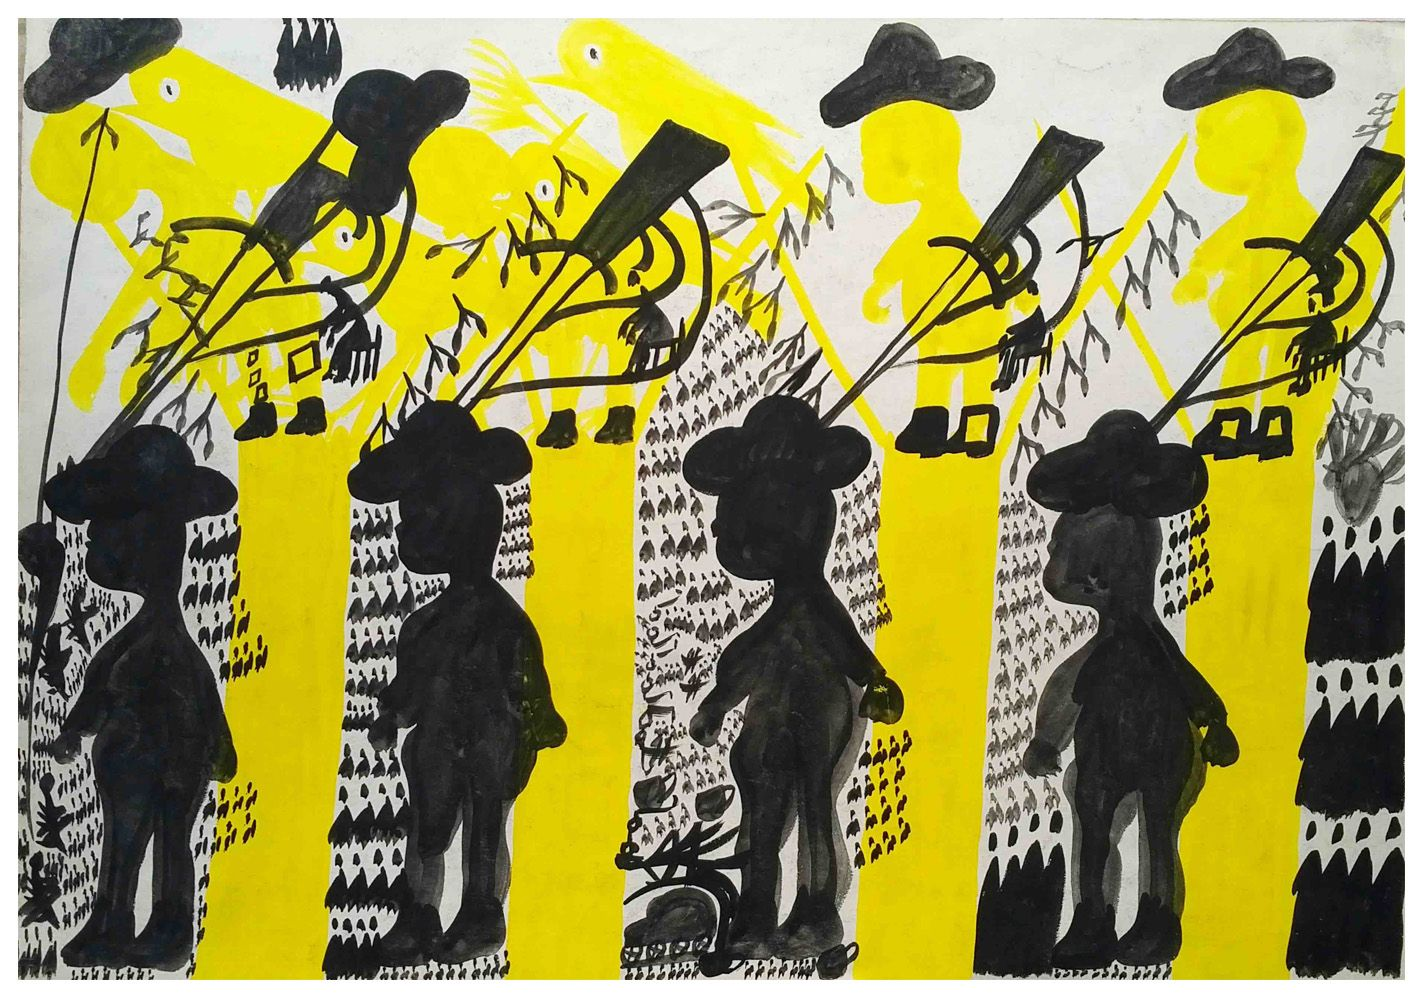 Carlo Zinelli (1916-1974) Italy, Untitled, 1960, Tempera on paper, 14 x 20 in